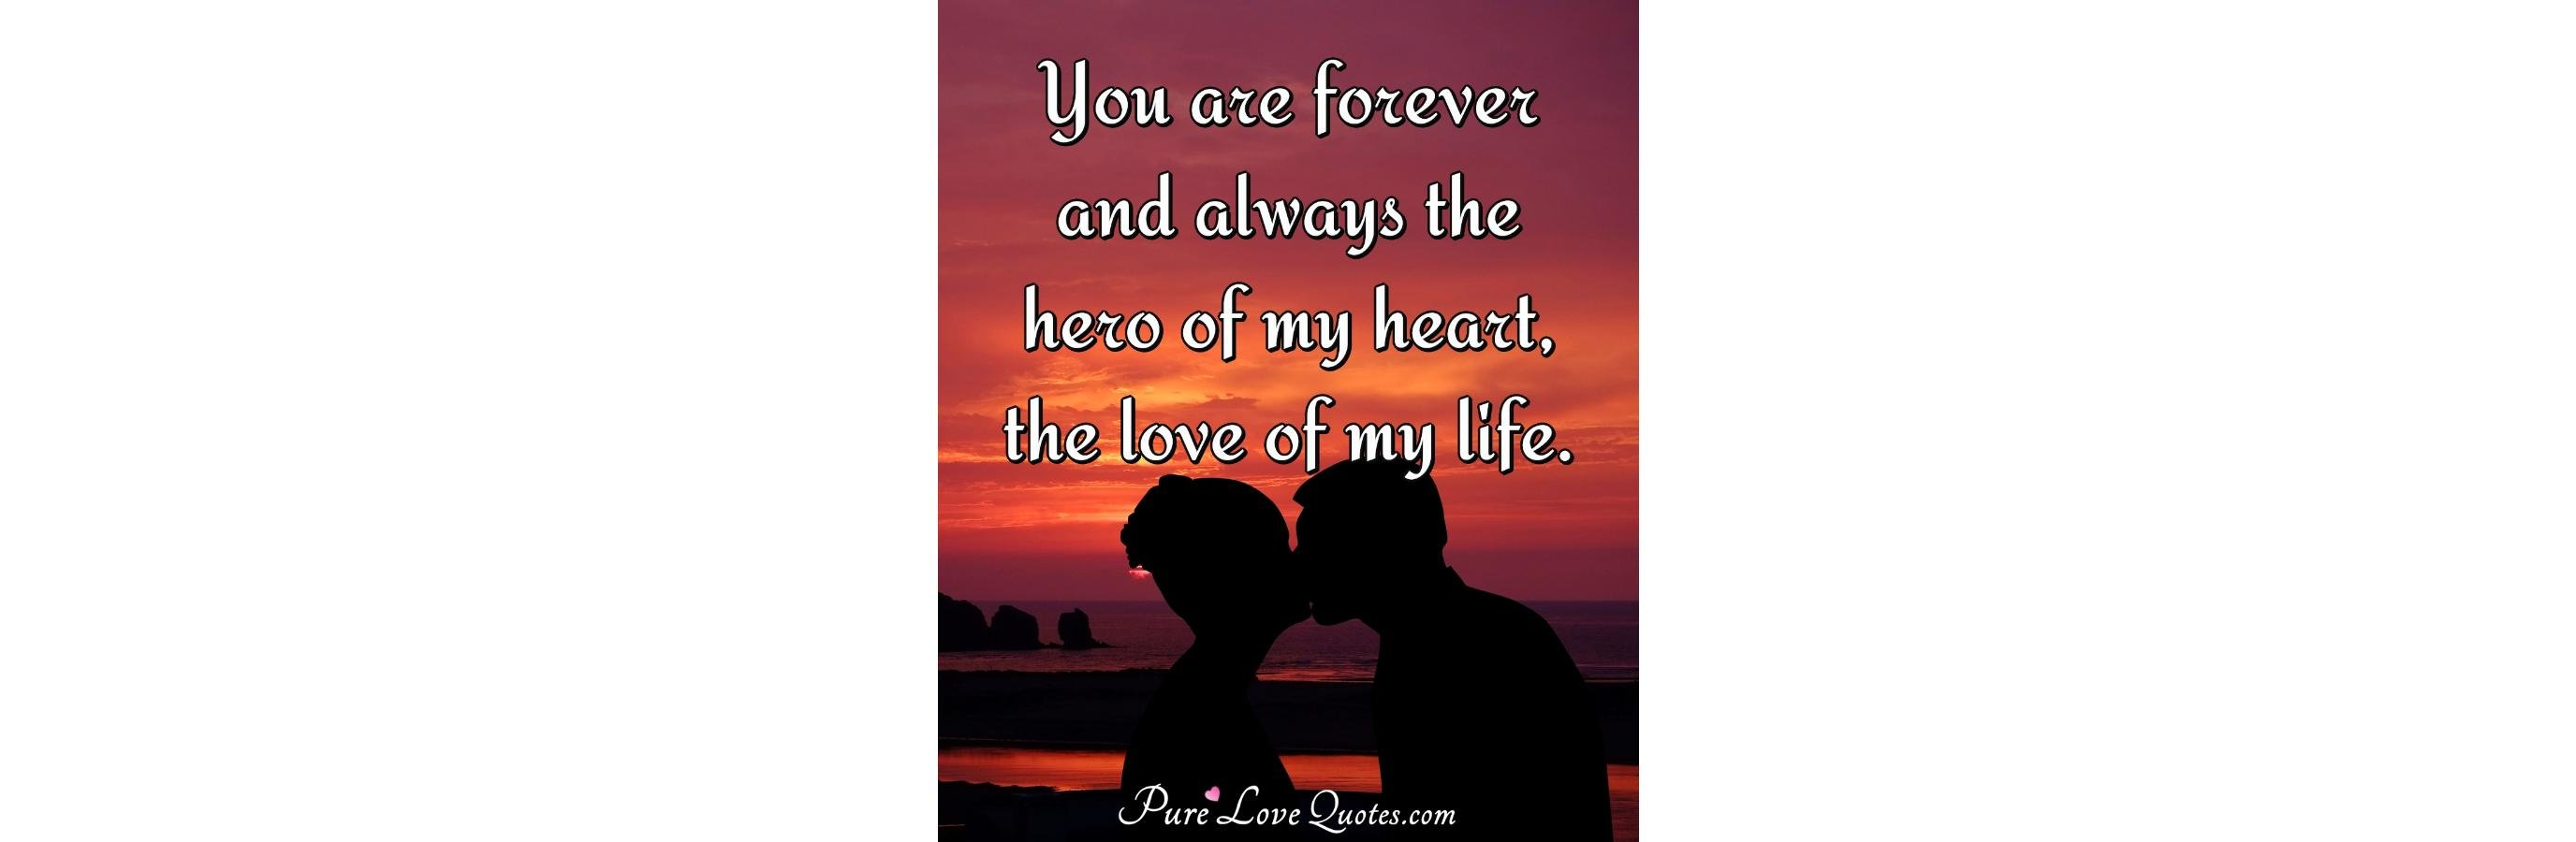 You Are Forever And Always The Hero Of My Heart The Love Of My Life